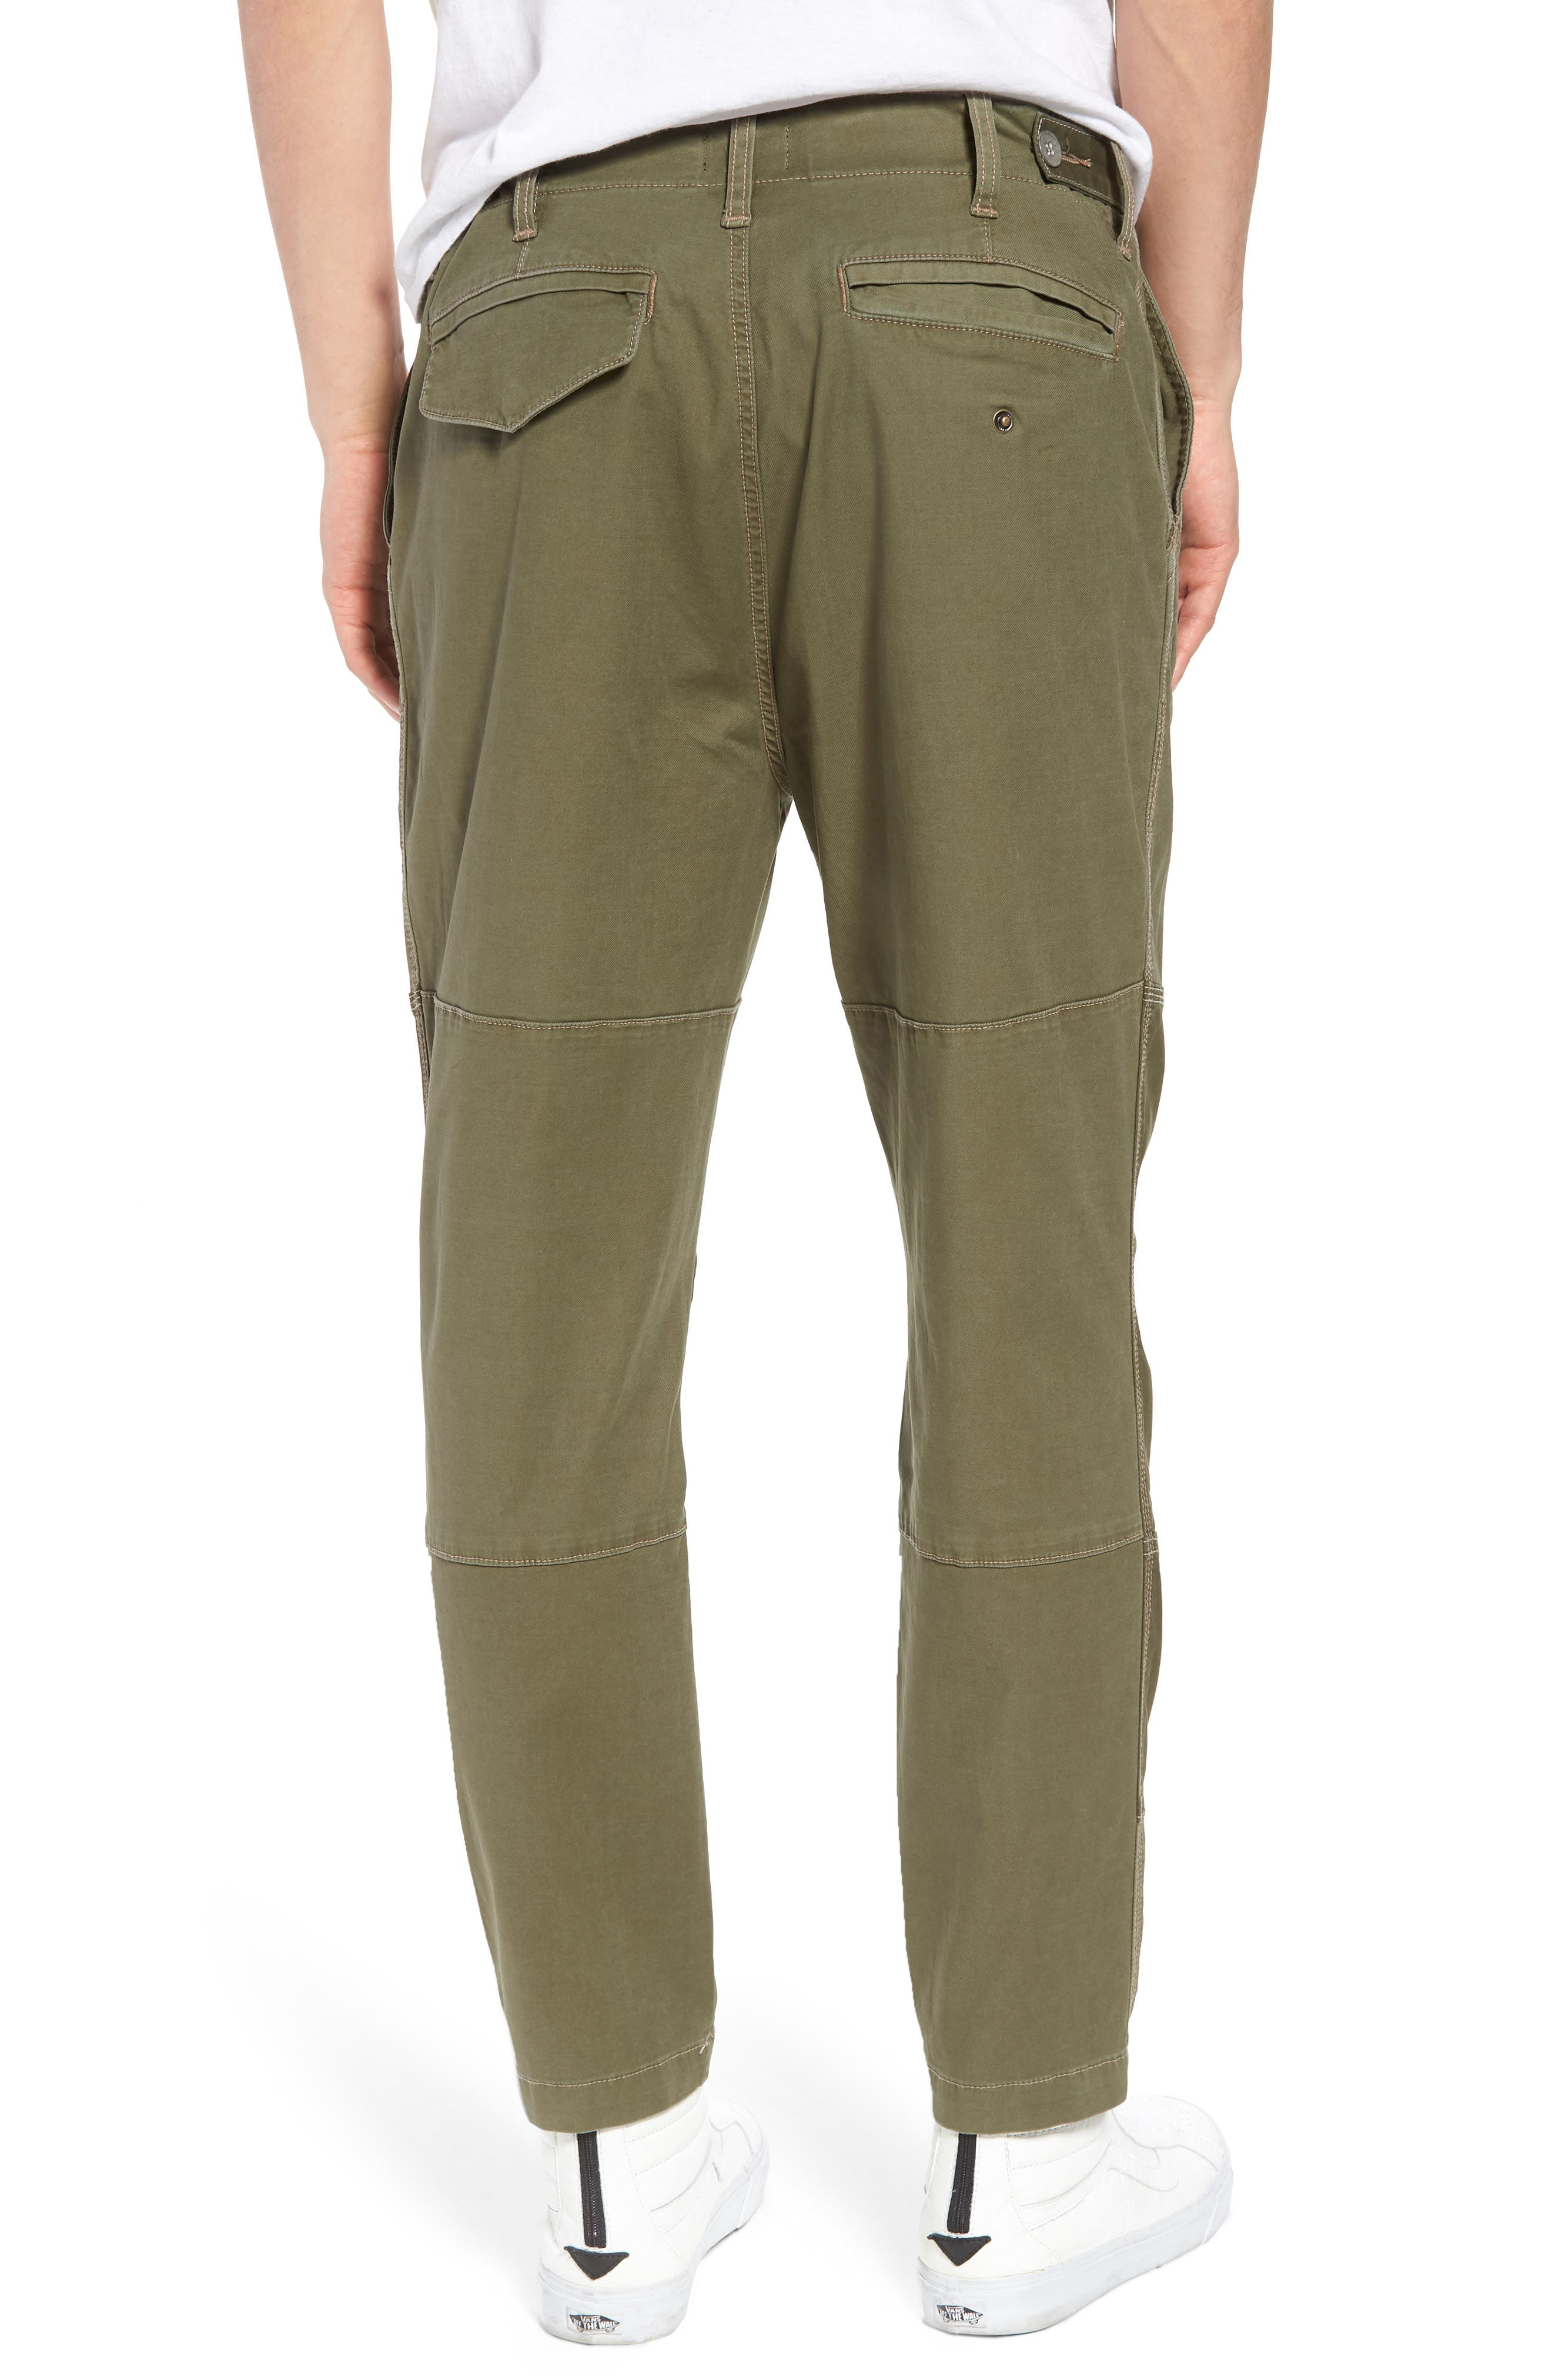 Slouchy Slim Fit Cargo Pants,                             Alternate thumbnail 2, color,                             Army Green 1